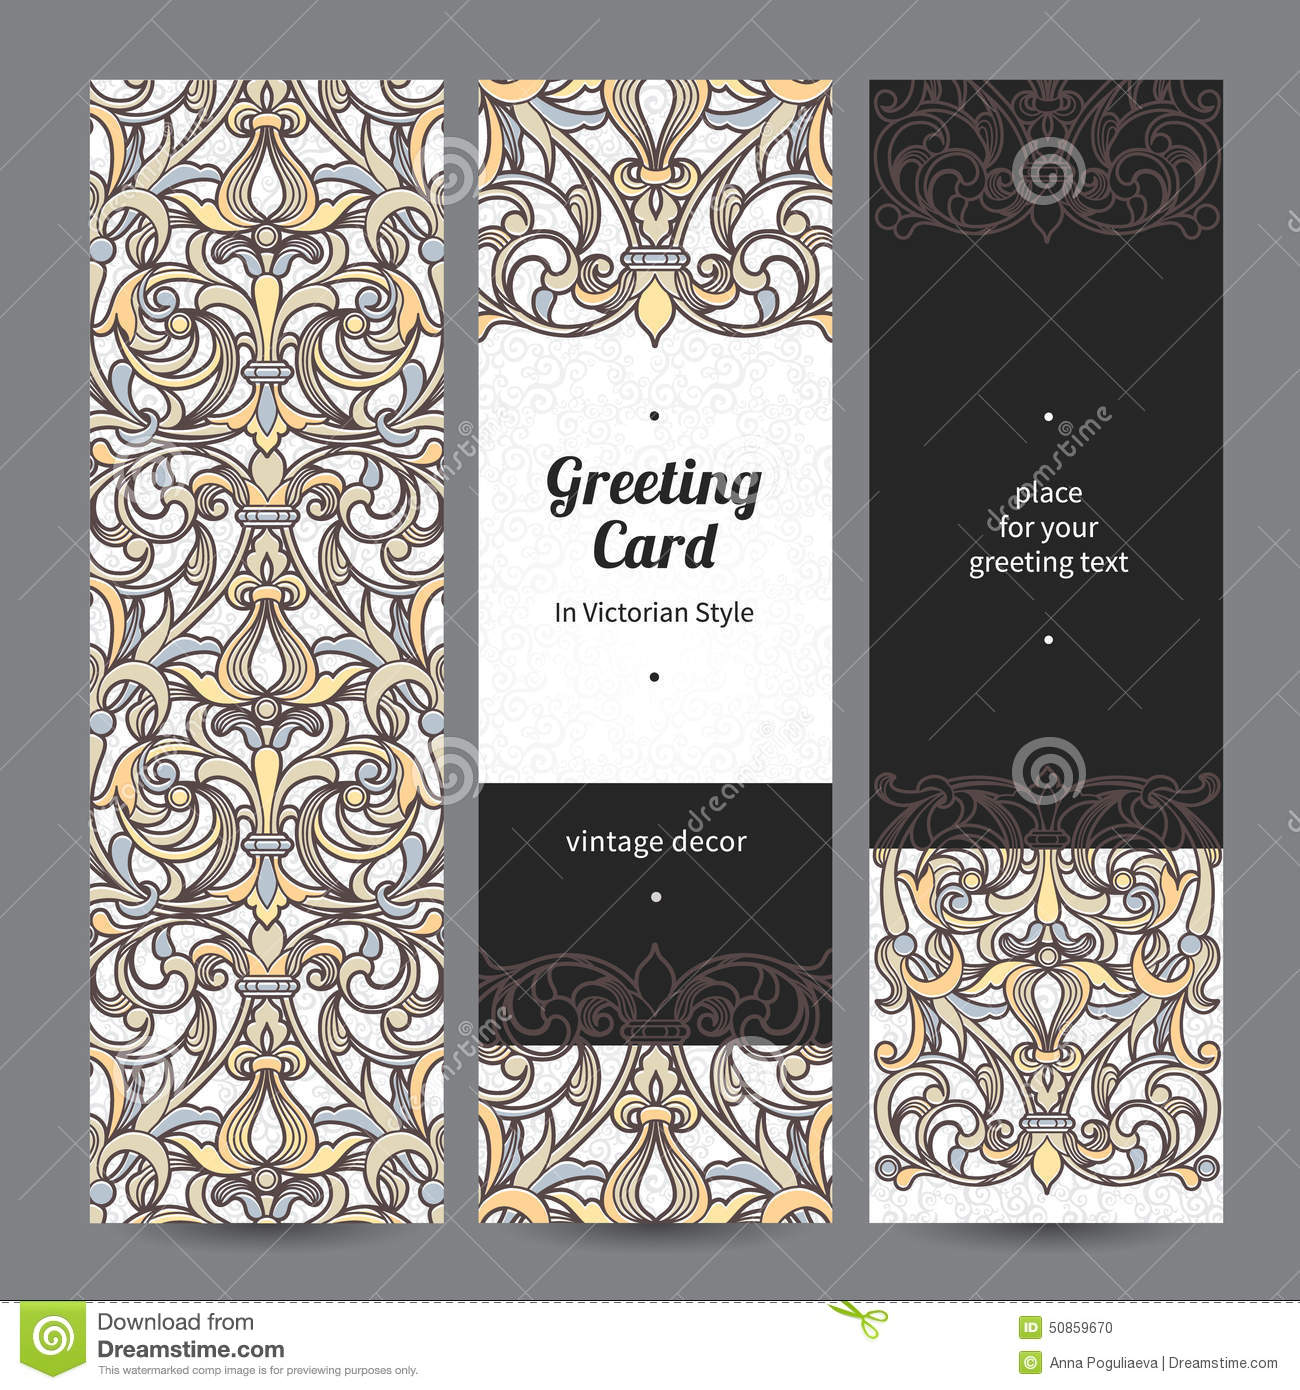 Vintage ornate cards in victorian style stock vector for Decor outline